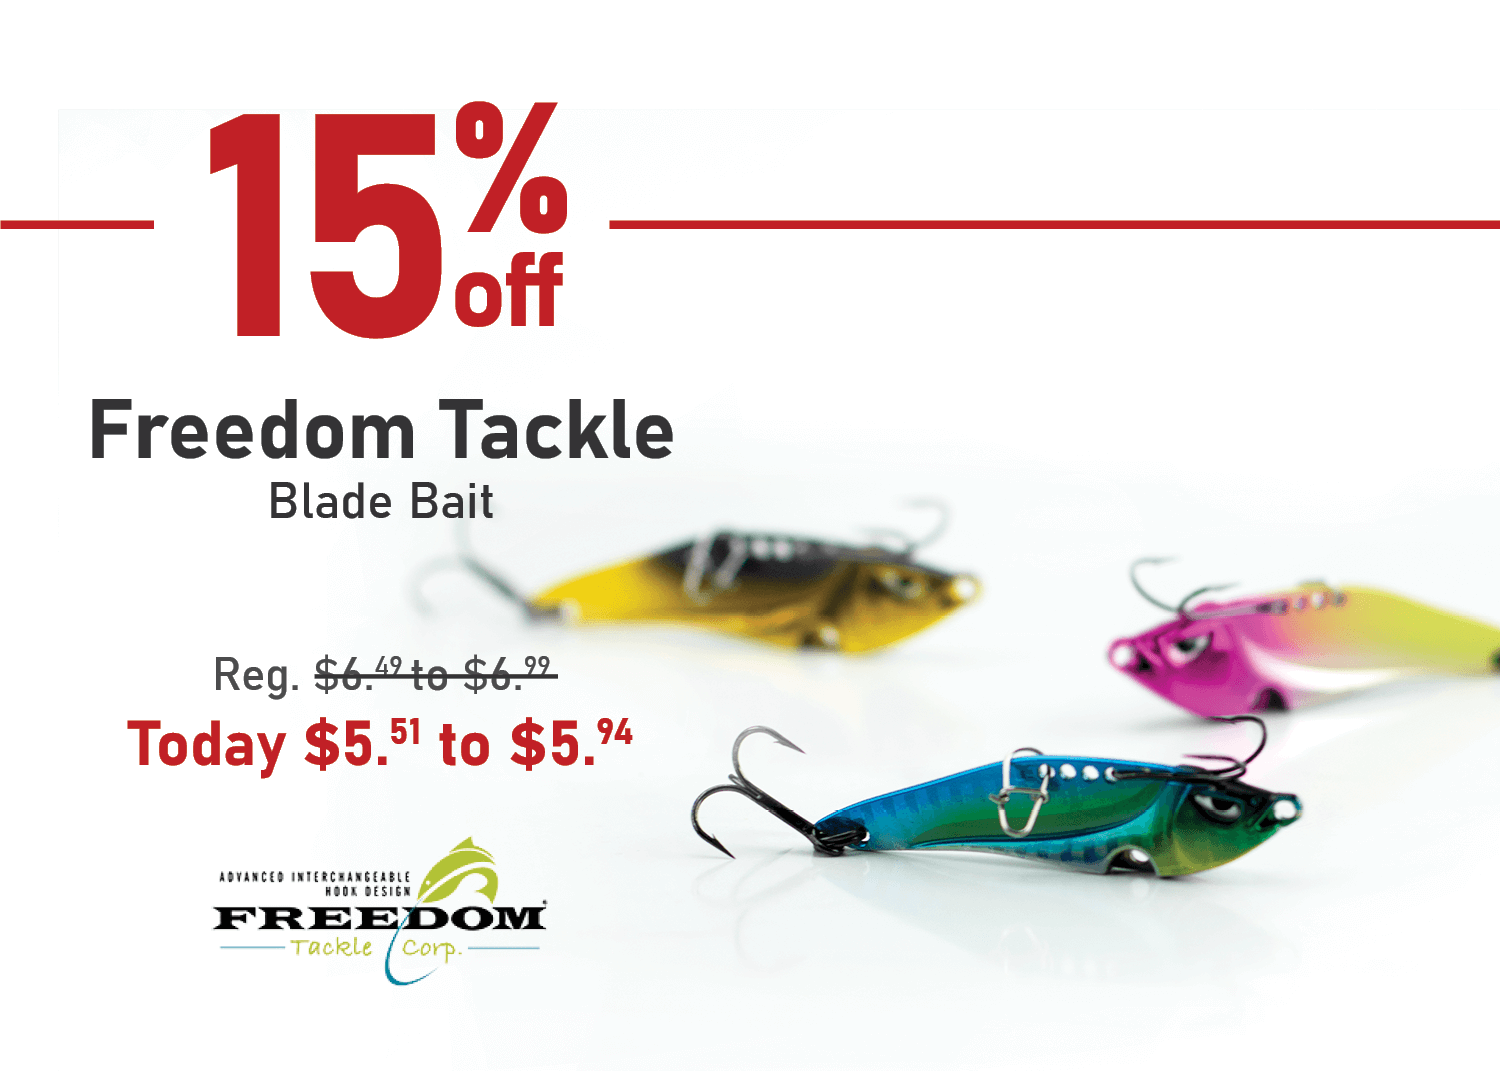 Save 15% on the Freedom Tackle Blade Bait